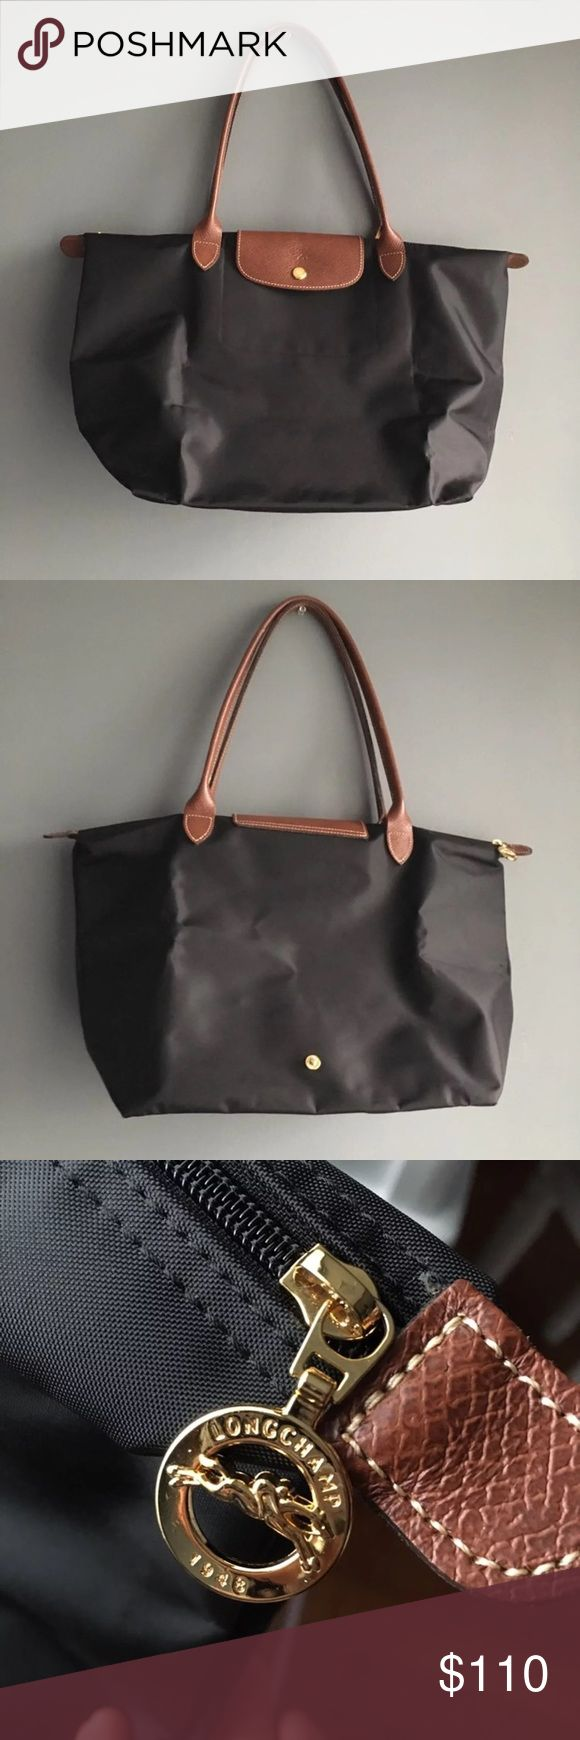 """Longchamp Le Pliage large tote Authentic. Excellent preused condition. Creases and faint scuffs on exterior, faint crease or scuff on interior & one tiny scuff peel on handle. 12 1/4 """" W x 11 3/4 """" H x 7 1/2 """" D. 9"""" strap drop. Top zip closure with outer snap tab. Interior wall pocket. Buy as is. Final sale. Final price. Longchamp Bags Totes"""